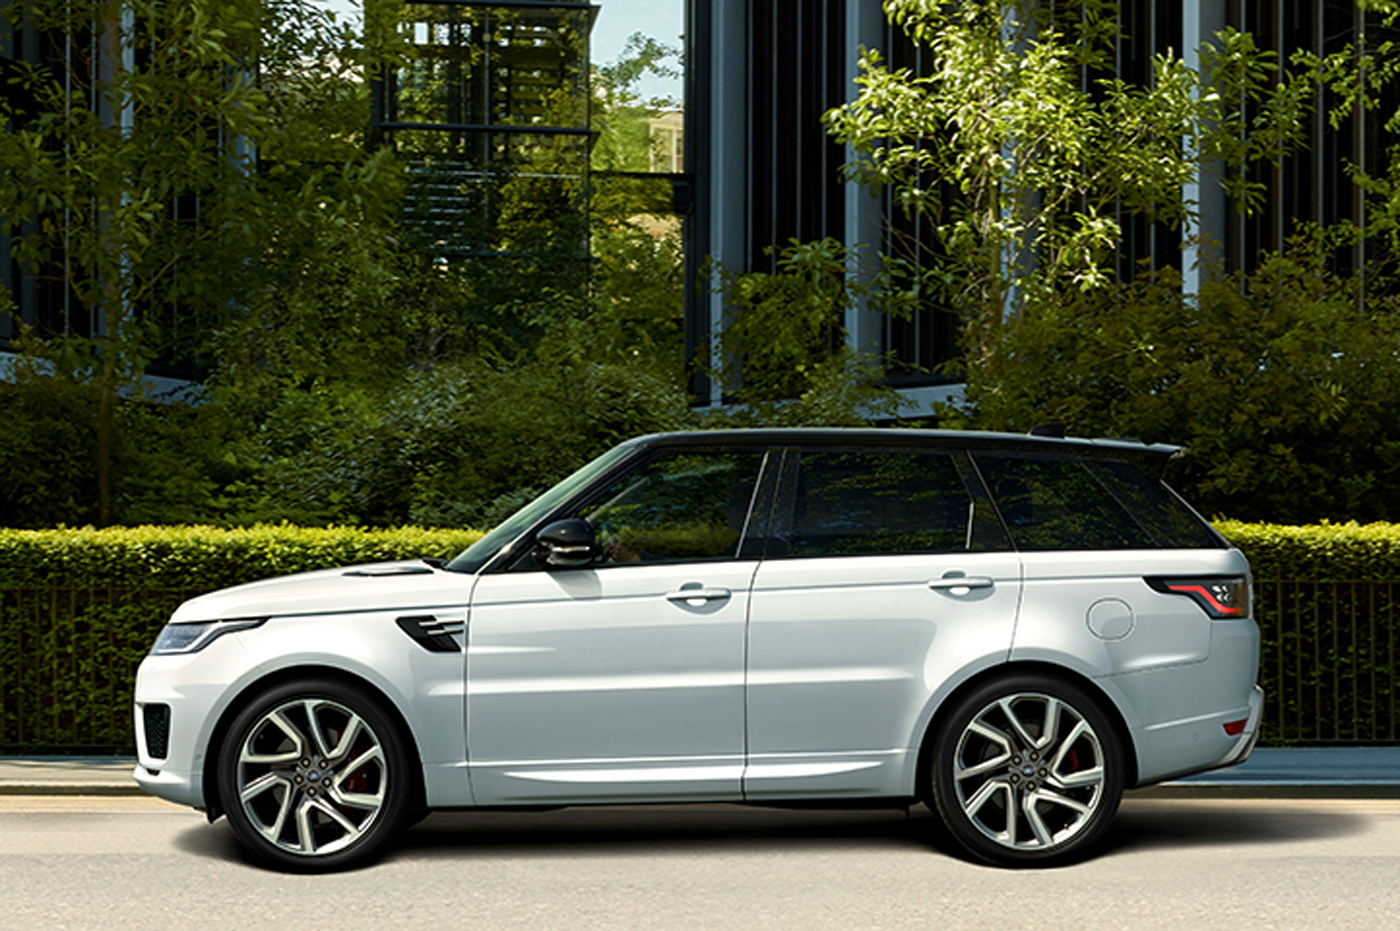 Range Rover Sport for Rent